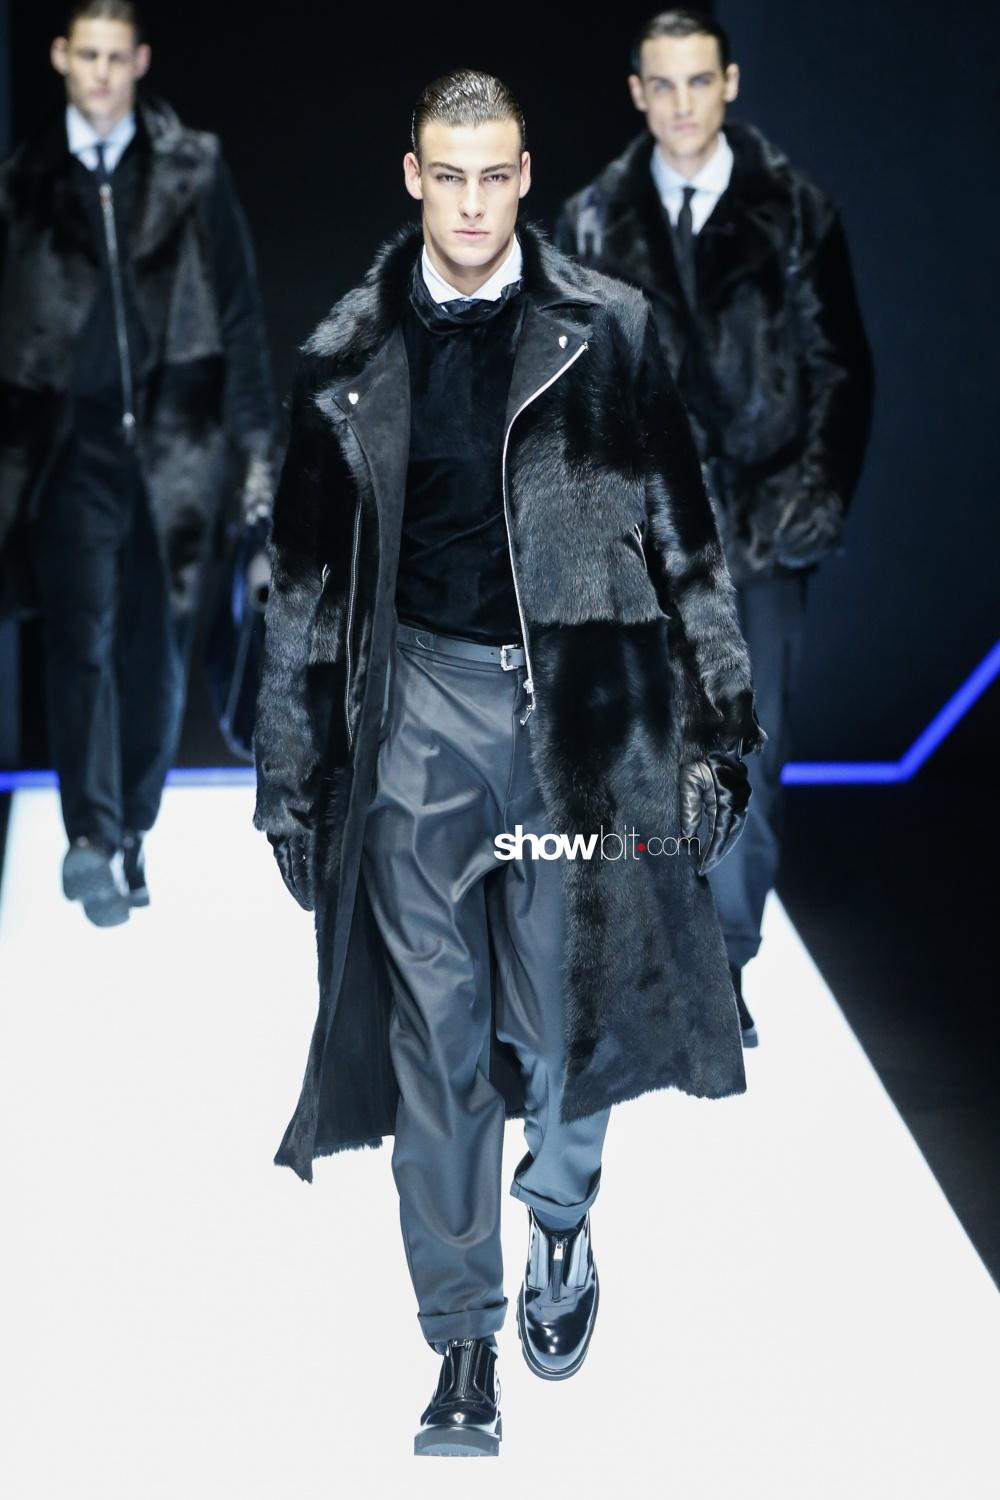 Emporio Armani fall winter 2018 men